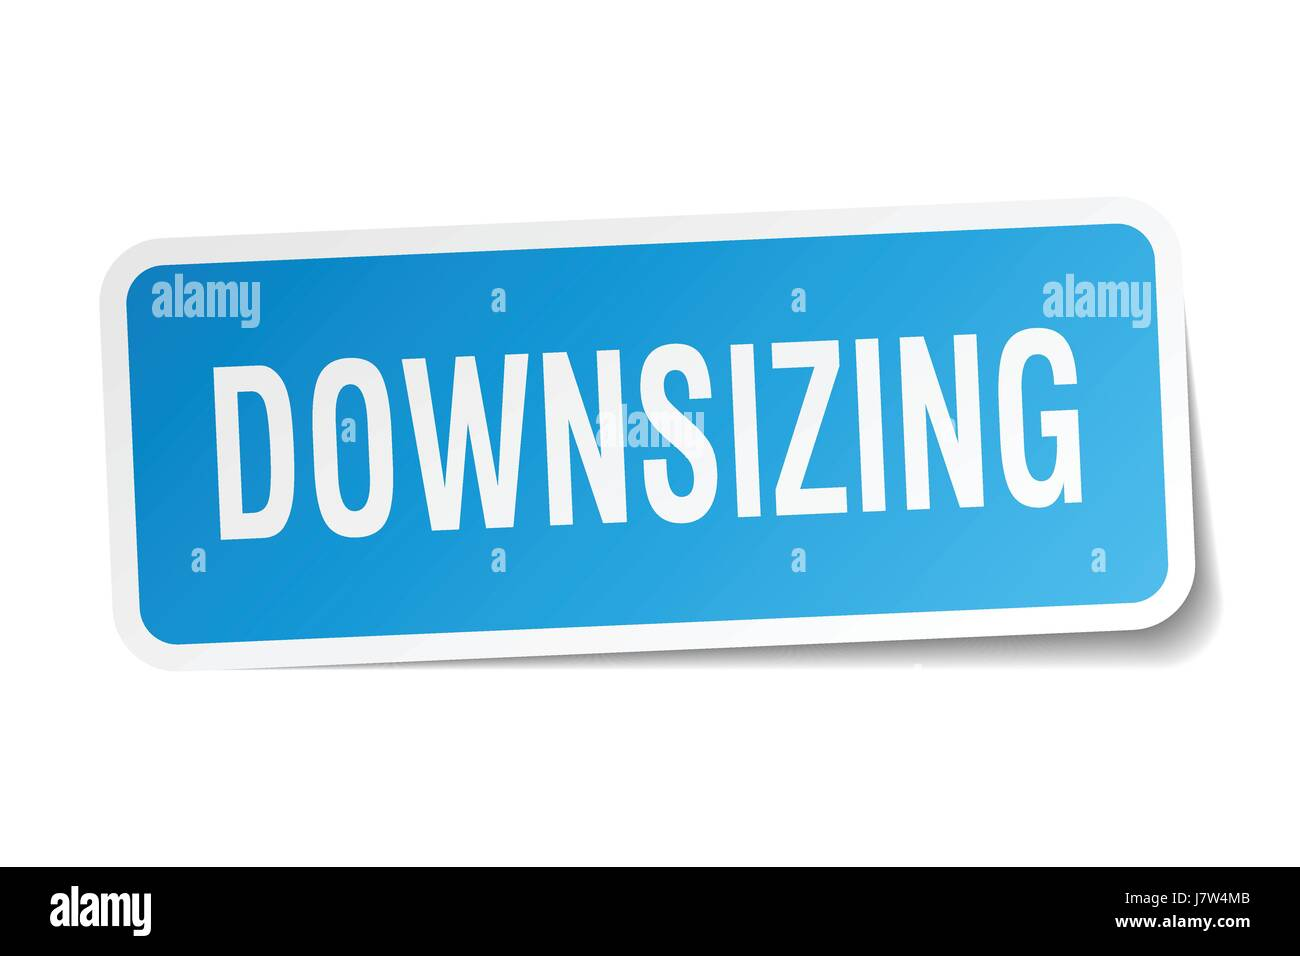 downsizing square sticker on white - Stock Vector